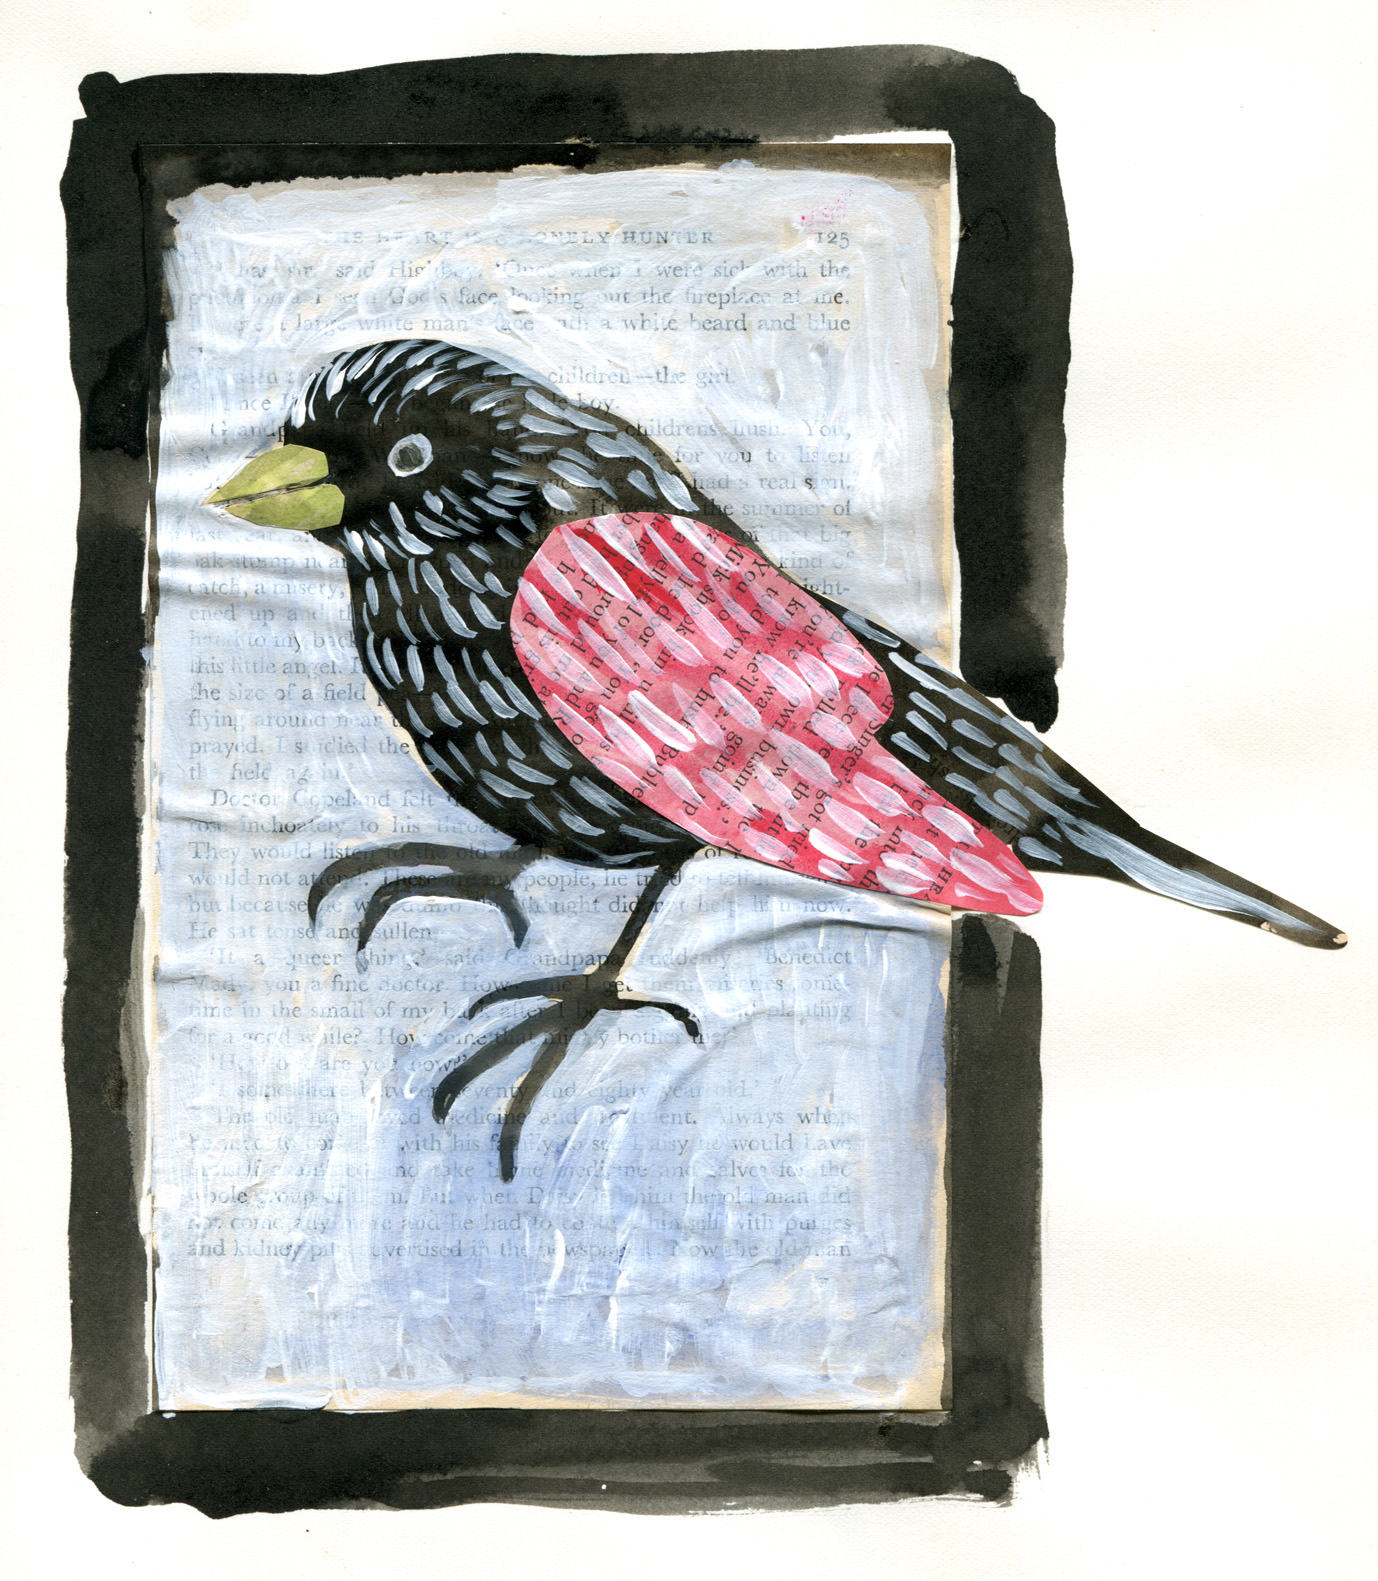 Another little collage bird